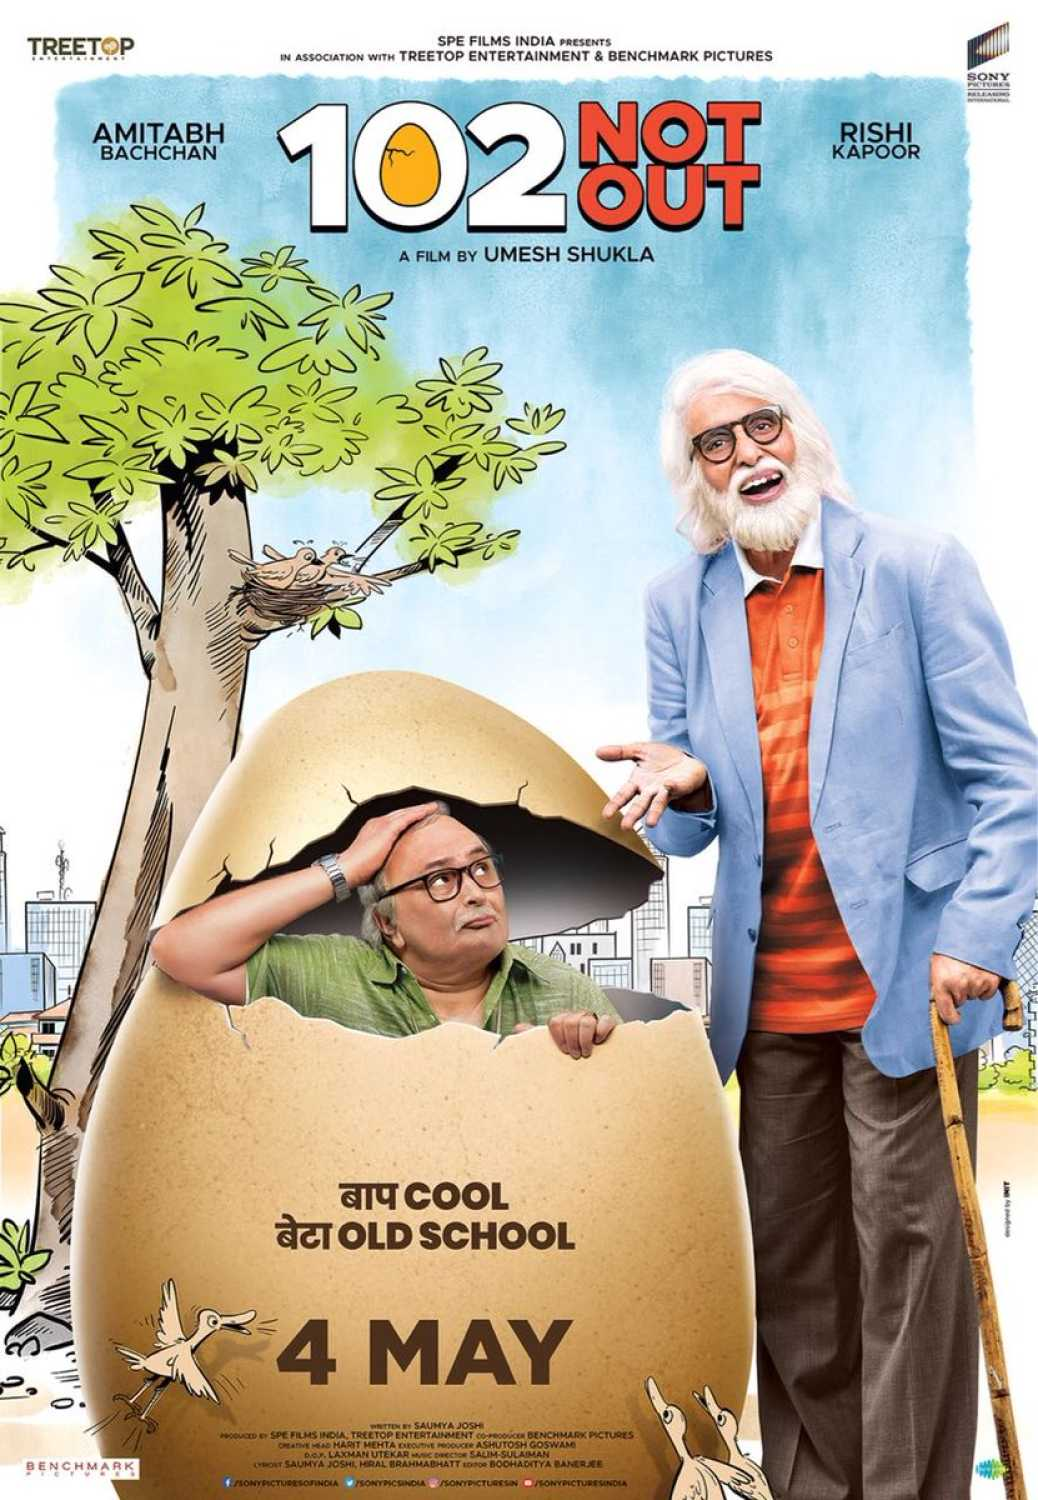 102 Not Out (2018) Hindi Full Movie HDRip || 720p 1.4GB, 480p 700MB, 360p 400MB || Download or Watch Online